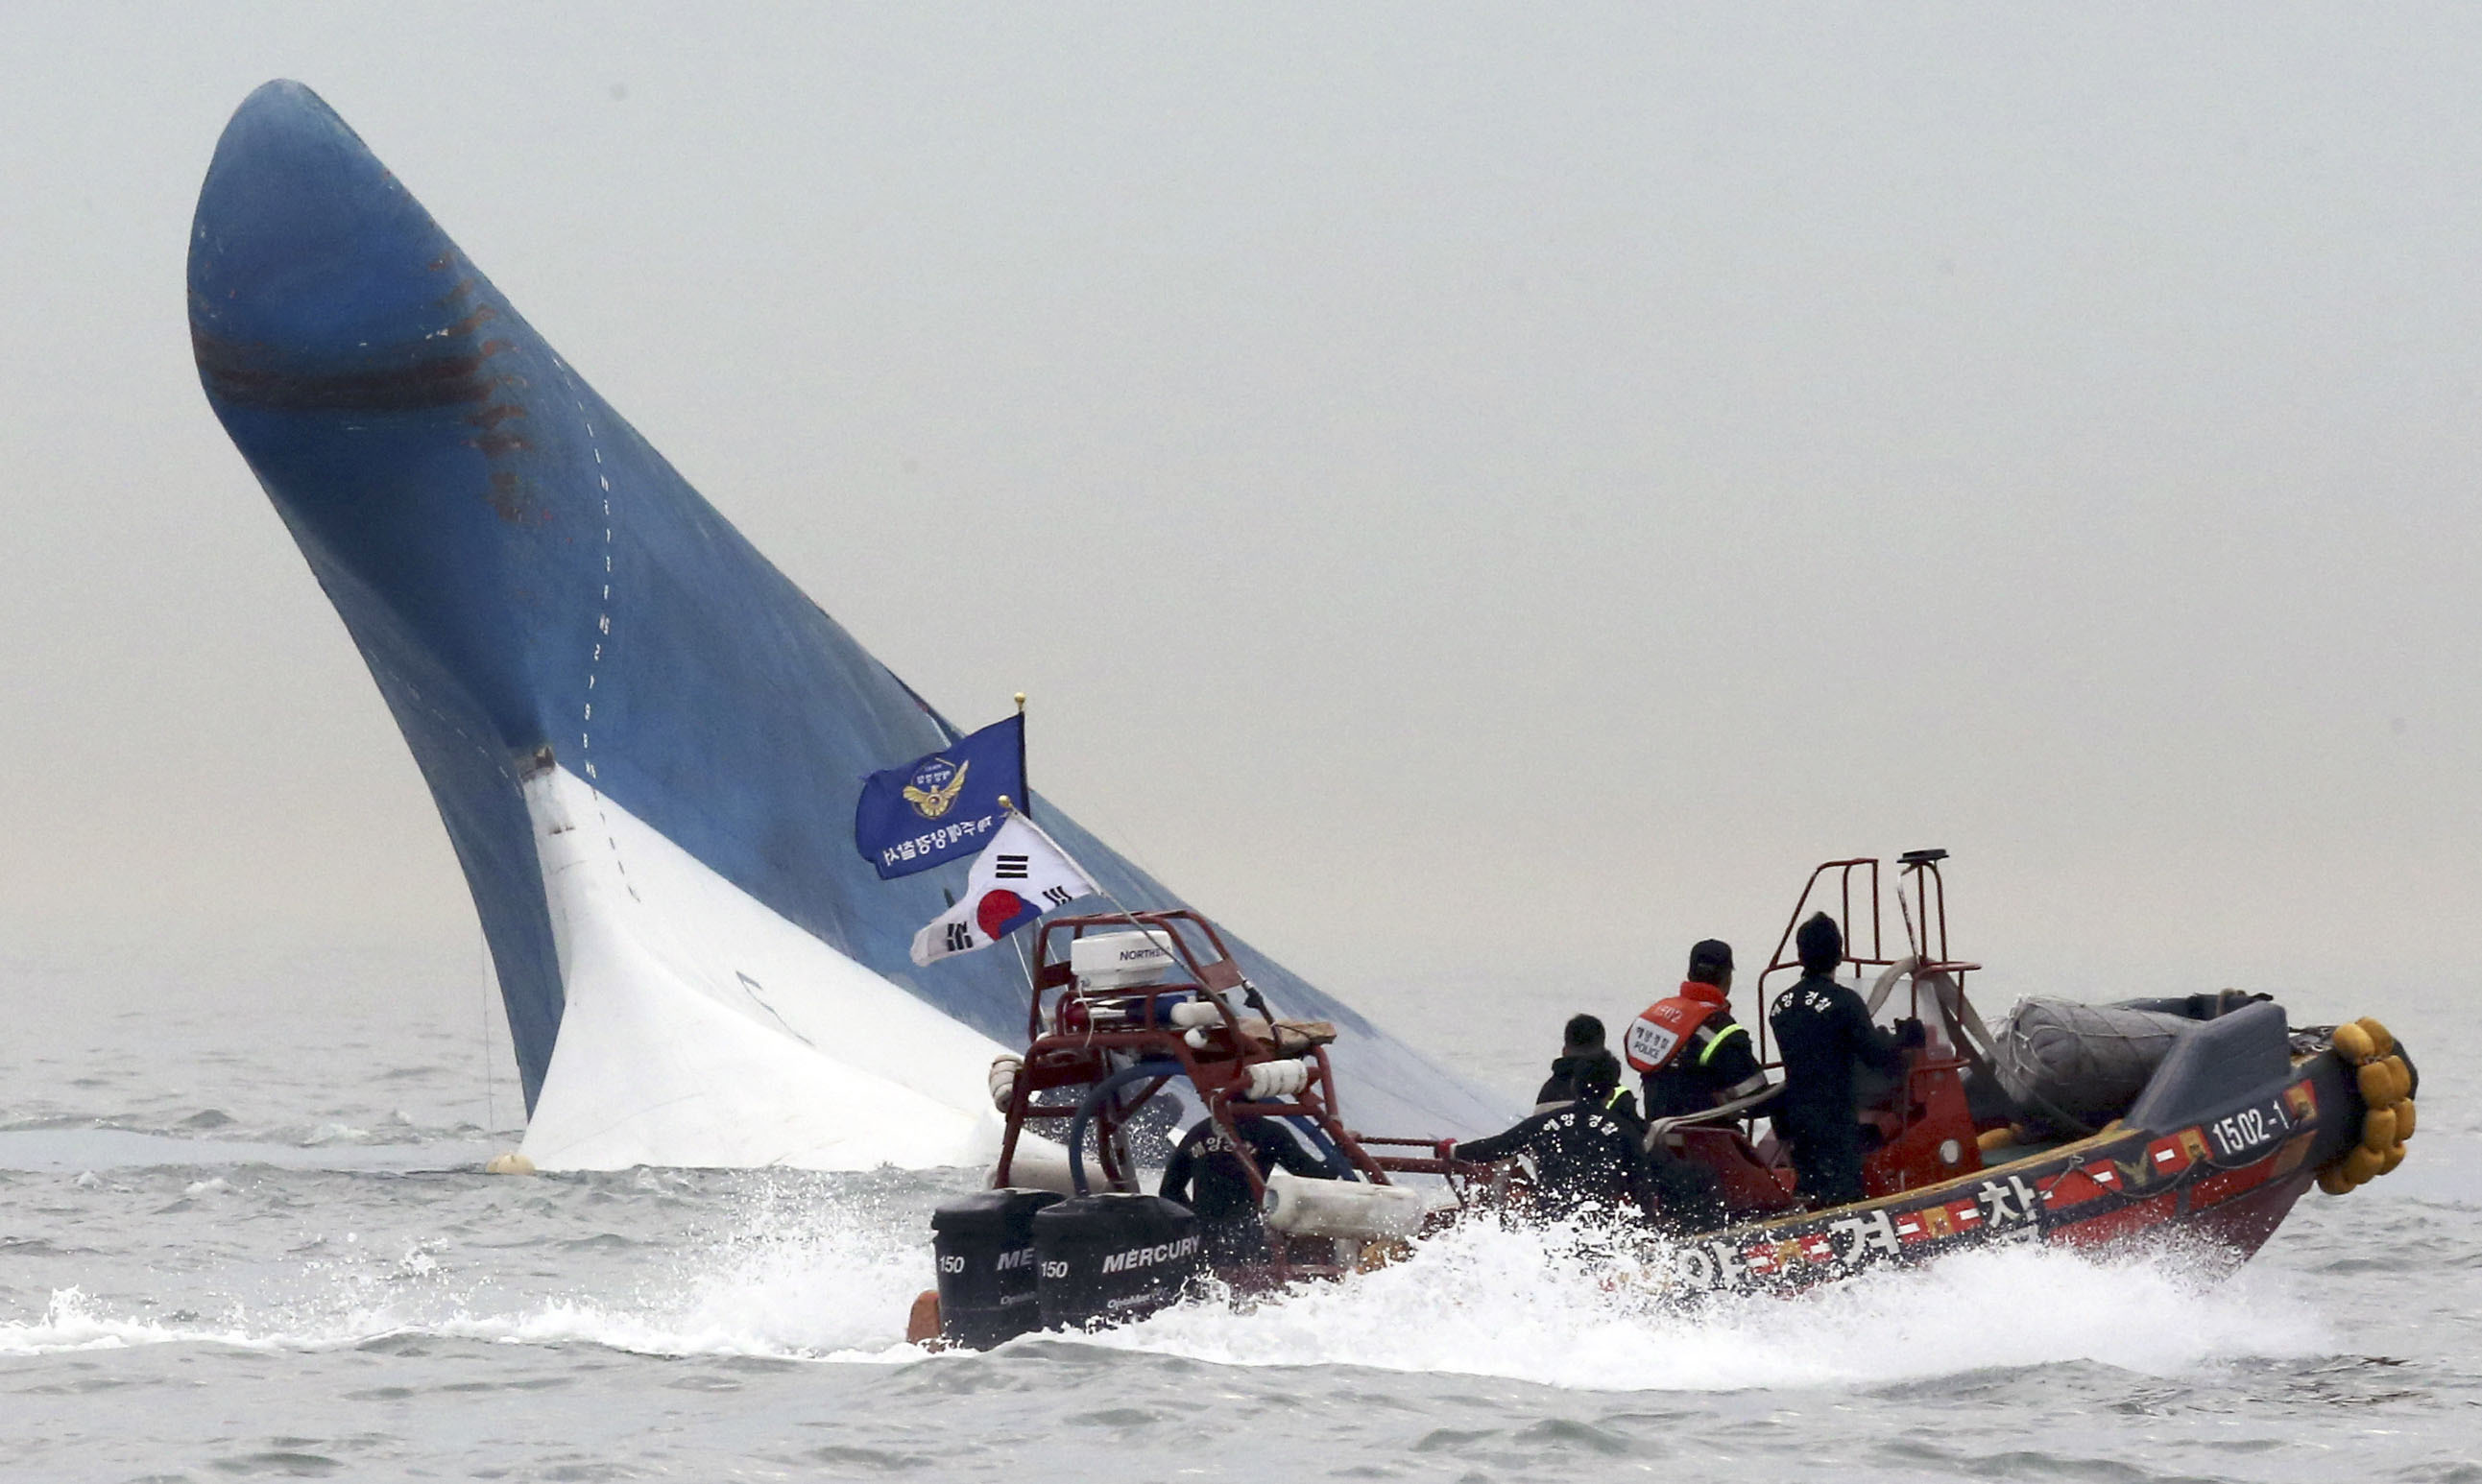 South Korean Coast Guard officers attempt to rescue passengers from the sinking Sewol ferry on April 16 after the overloaded vessel capsized near Jindo Island, off the southwest coast.